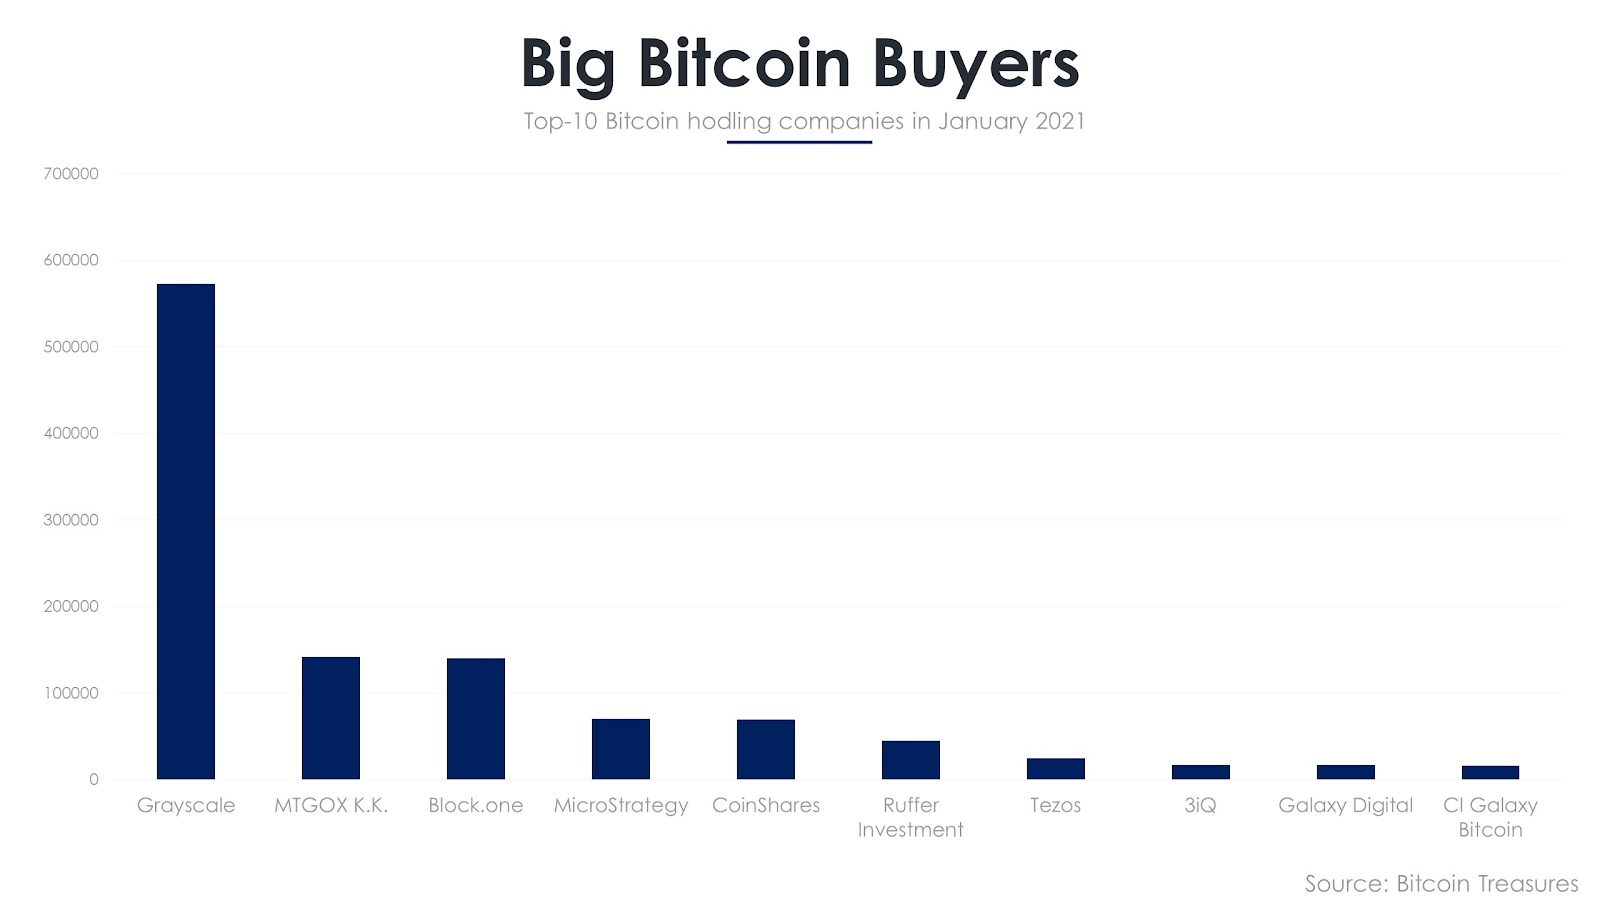 Companies that hold the most Bitcoin